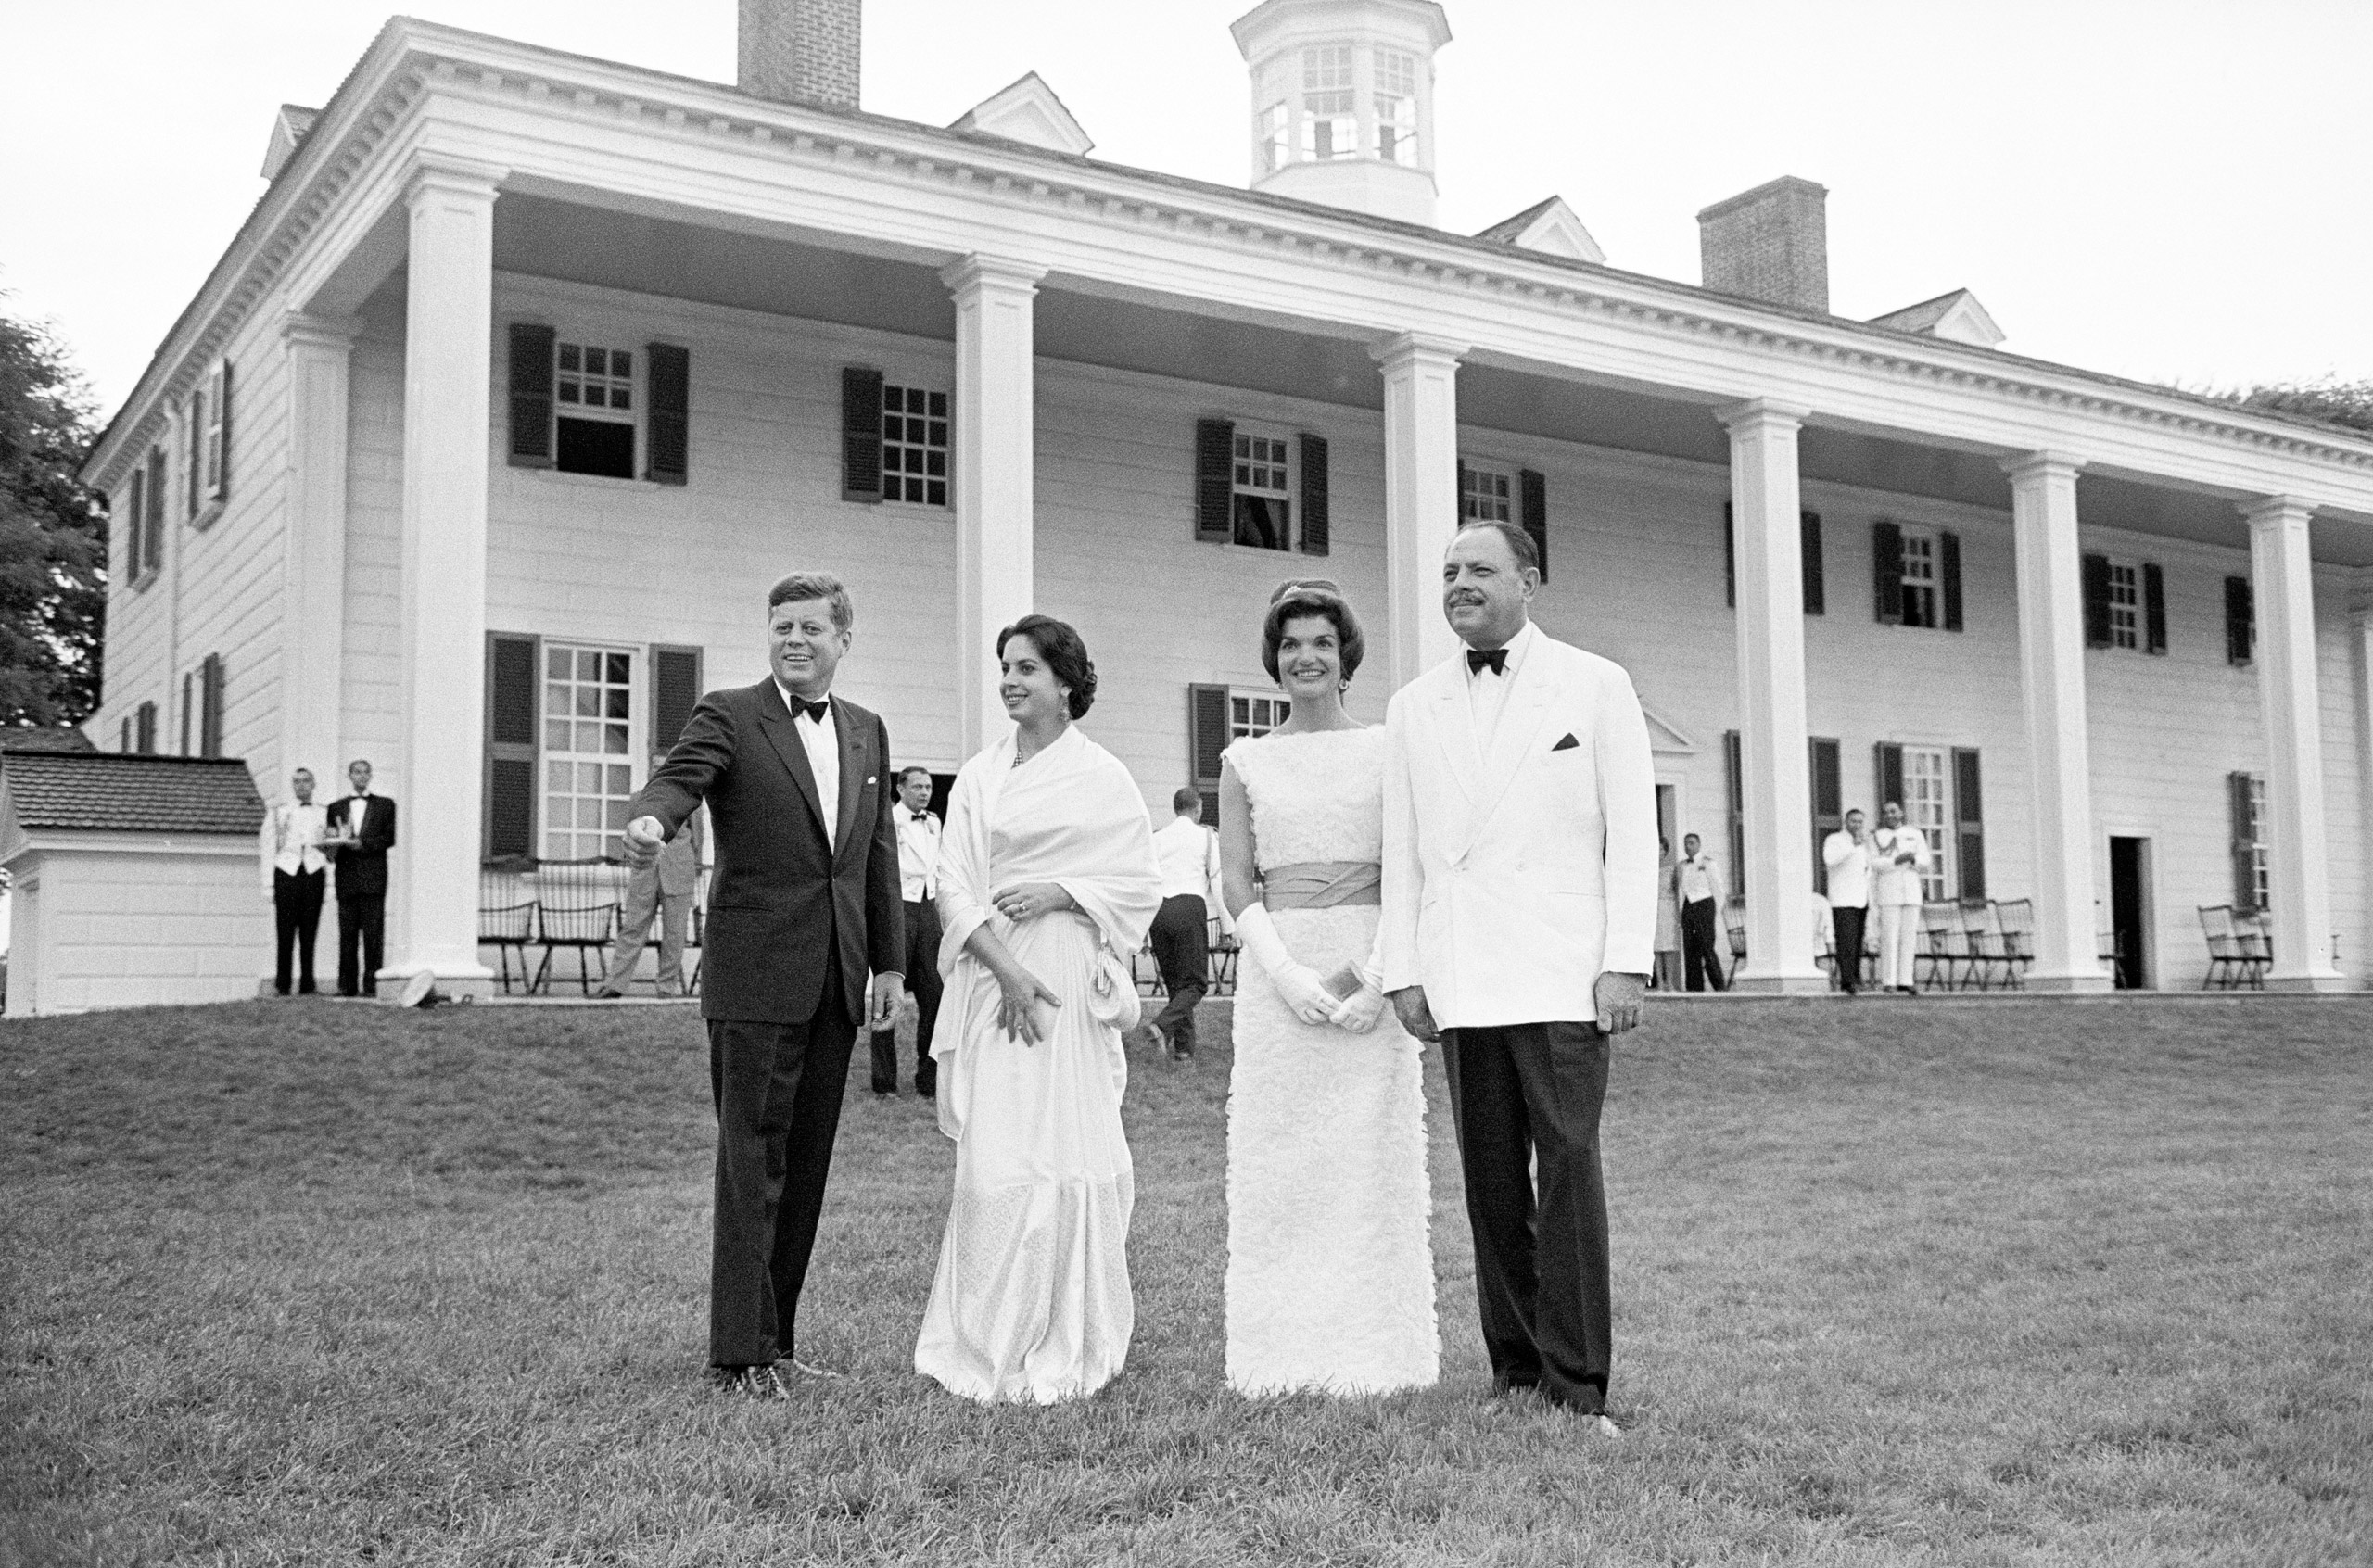 President Kennedy points out landmarks to Pakistan President Mohammed Ayeb Khan and his daughter, Begum Nasir Akhtar Aurangzeb, as they and Mrs. Kennedy pose near the home of George Washington tonight. The Kennedy couple entertained their Pakistani guests at a state dinner on the lawn of historic Mt. Vernon. July 11, 1961.